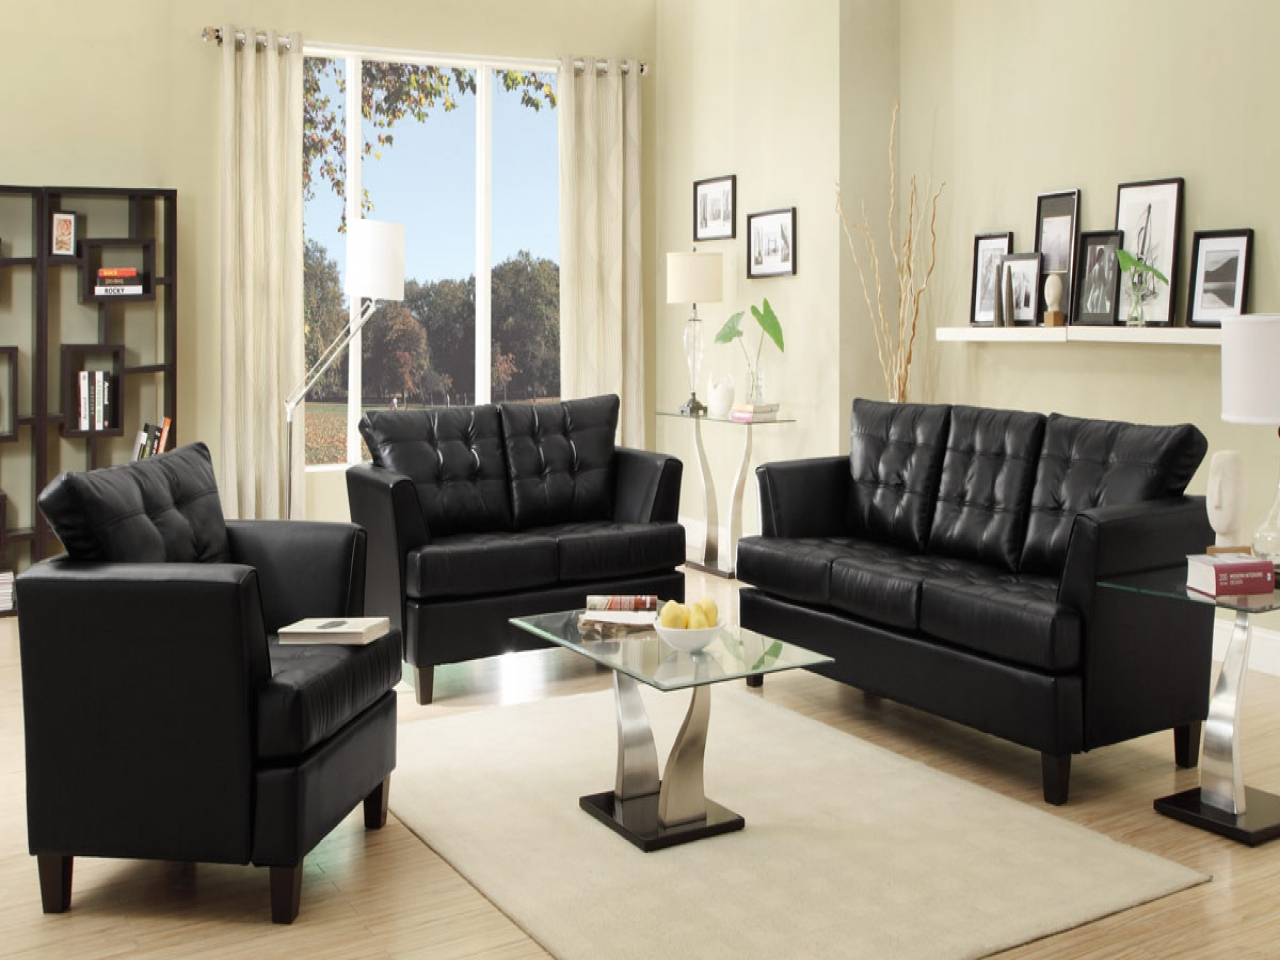 Black leather sofas for small spaces a sign of elegance and beauty 23 black leather sofas for - Leather sectional sofas for small spaces minimalist ...